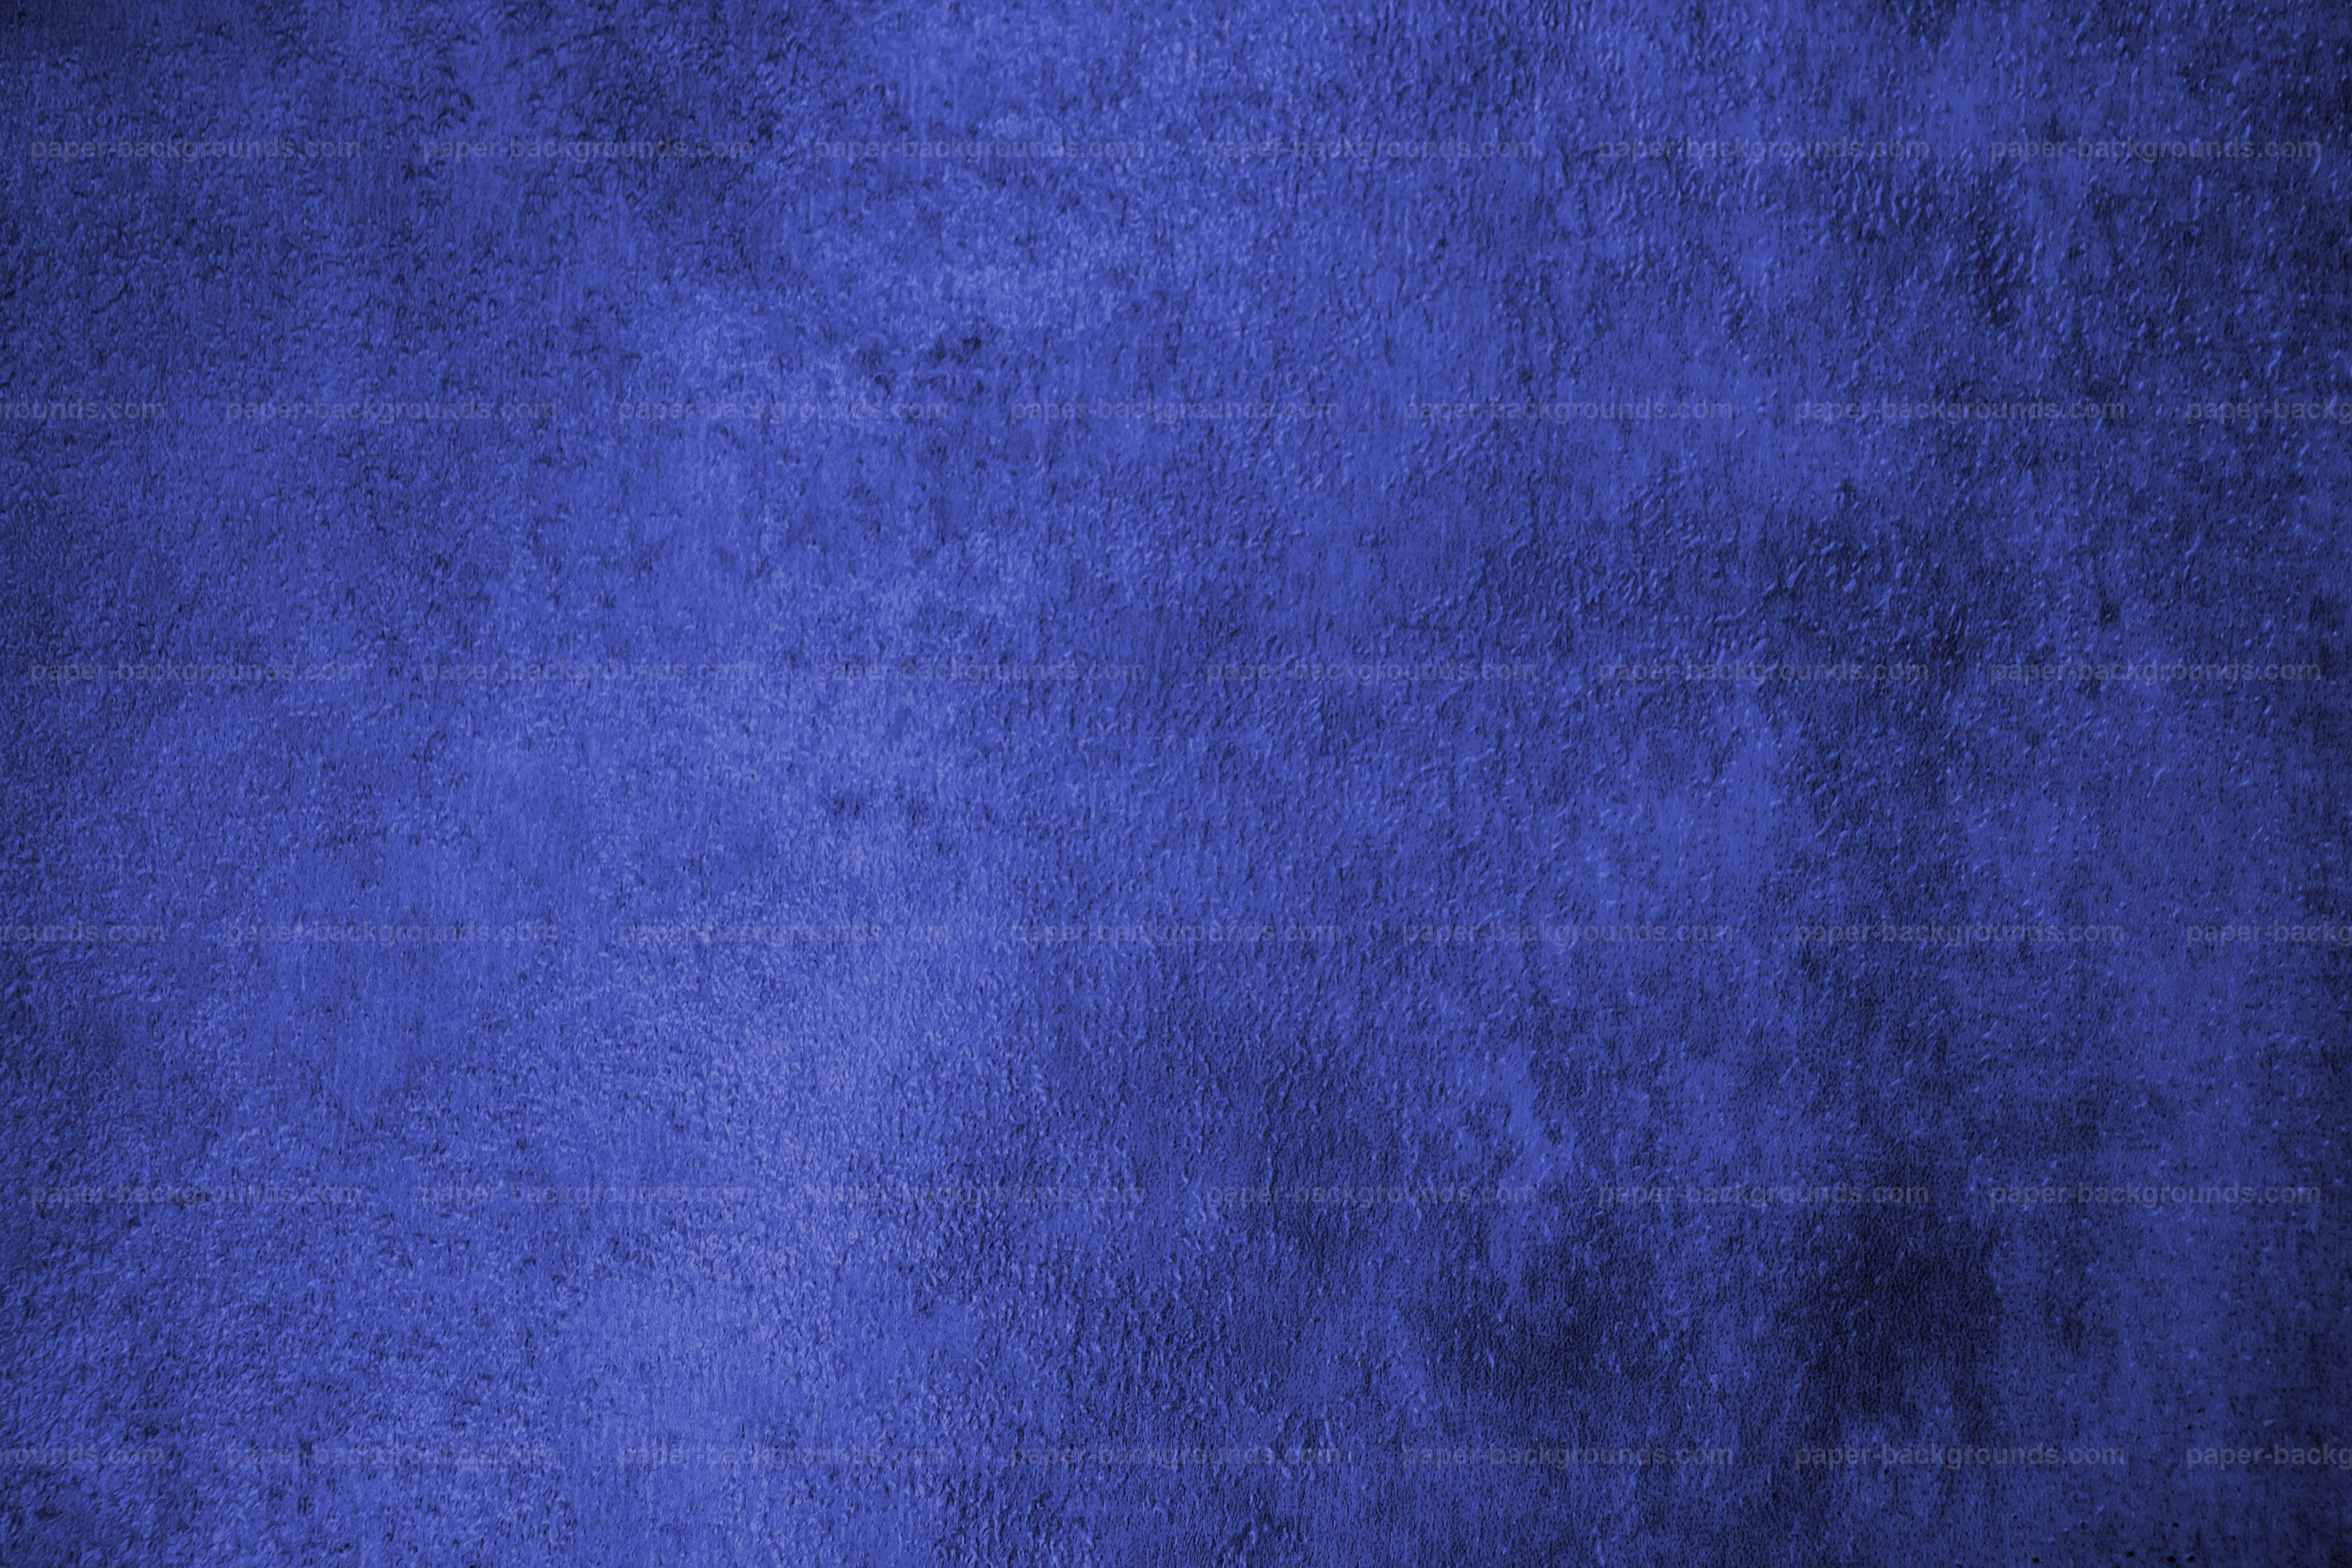 Blue Grunge Background: Blue Grunge Background Texture